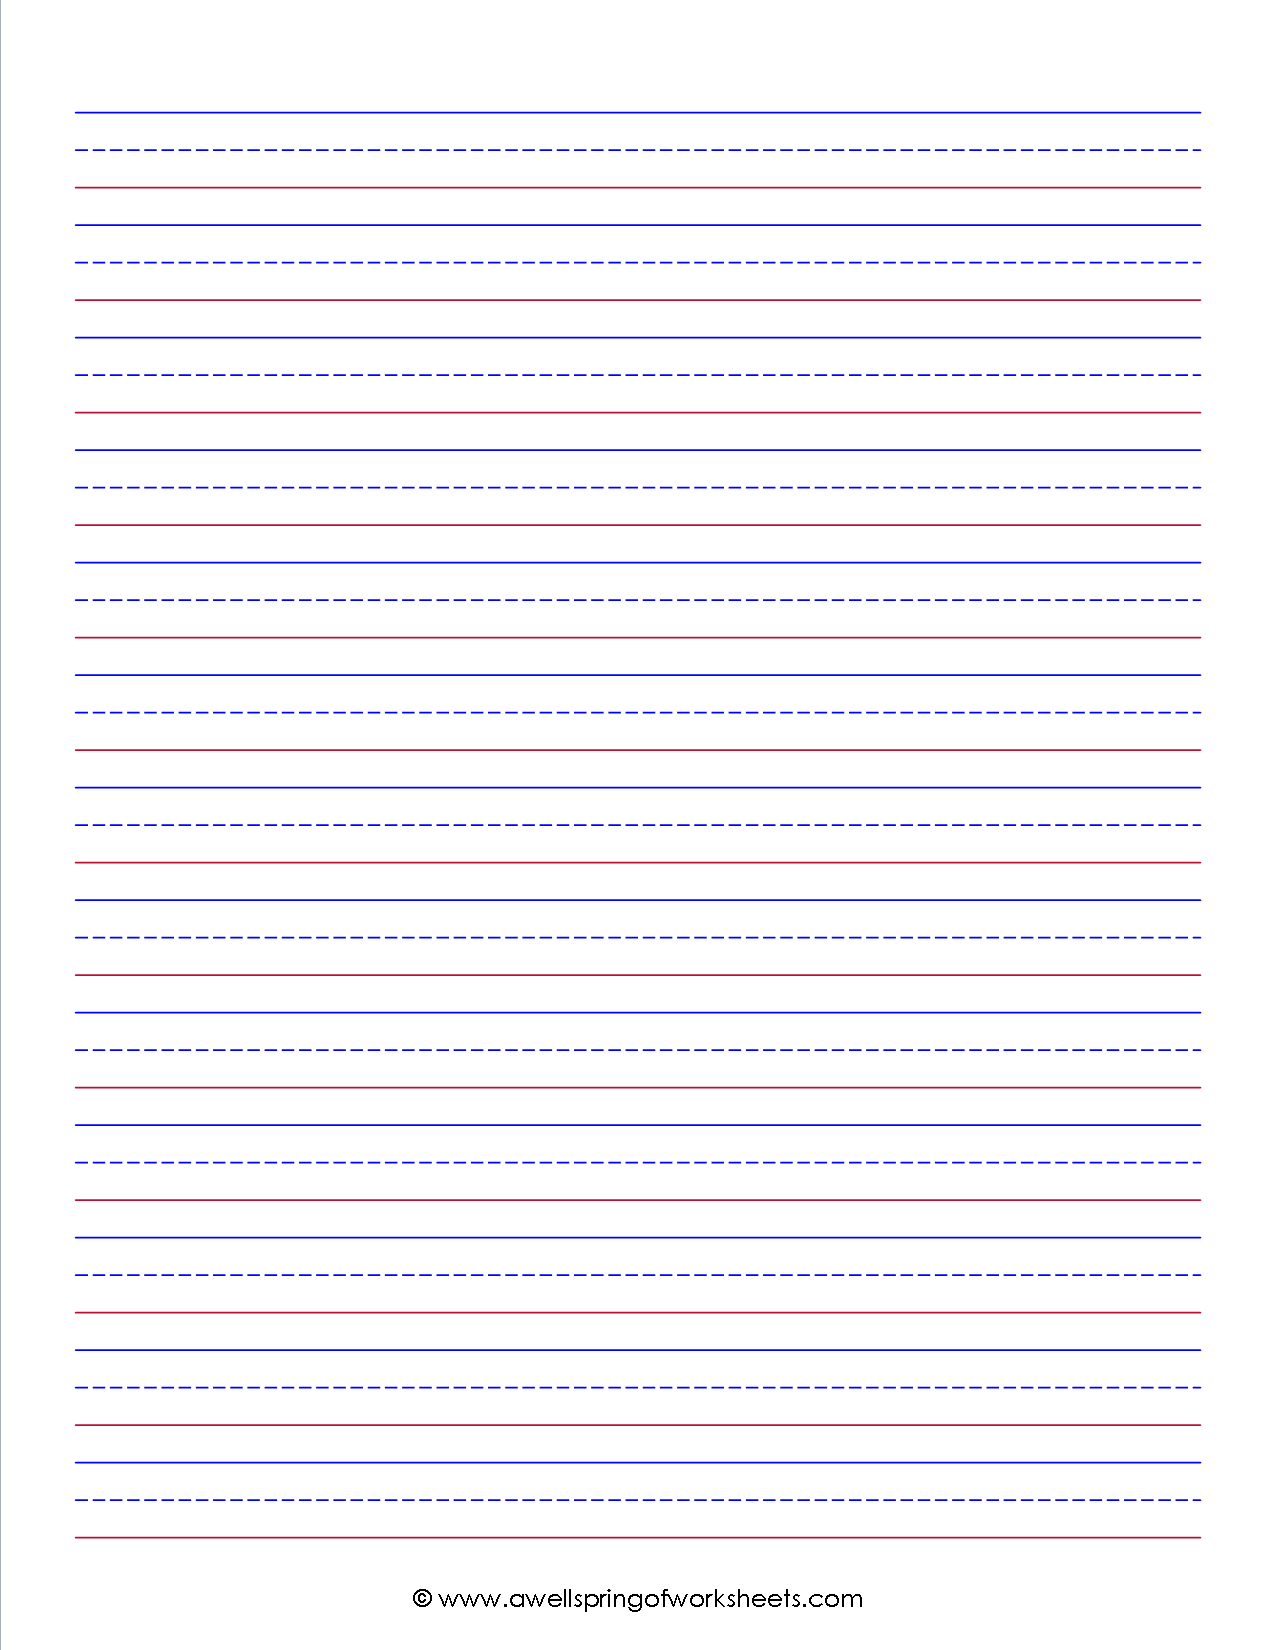 Primary Lined Paper